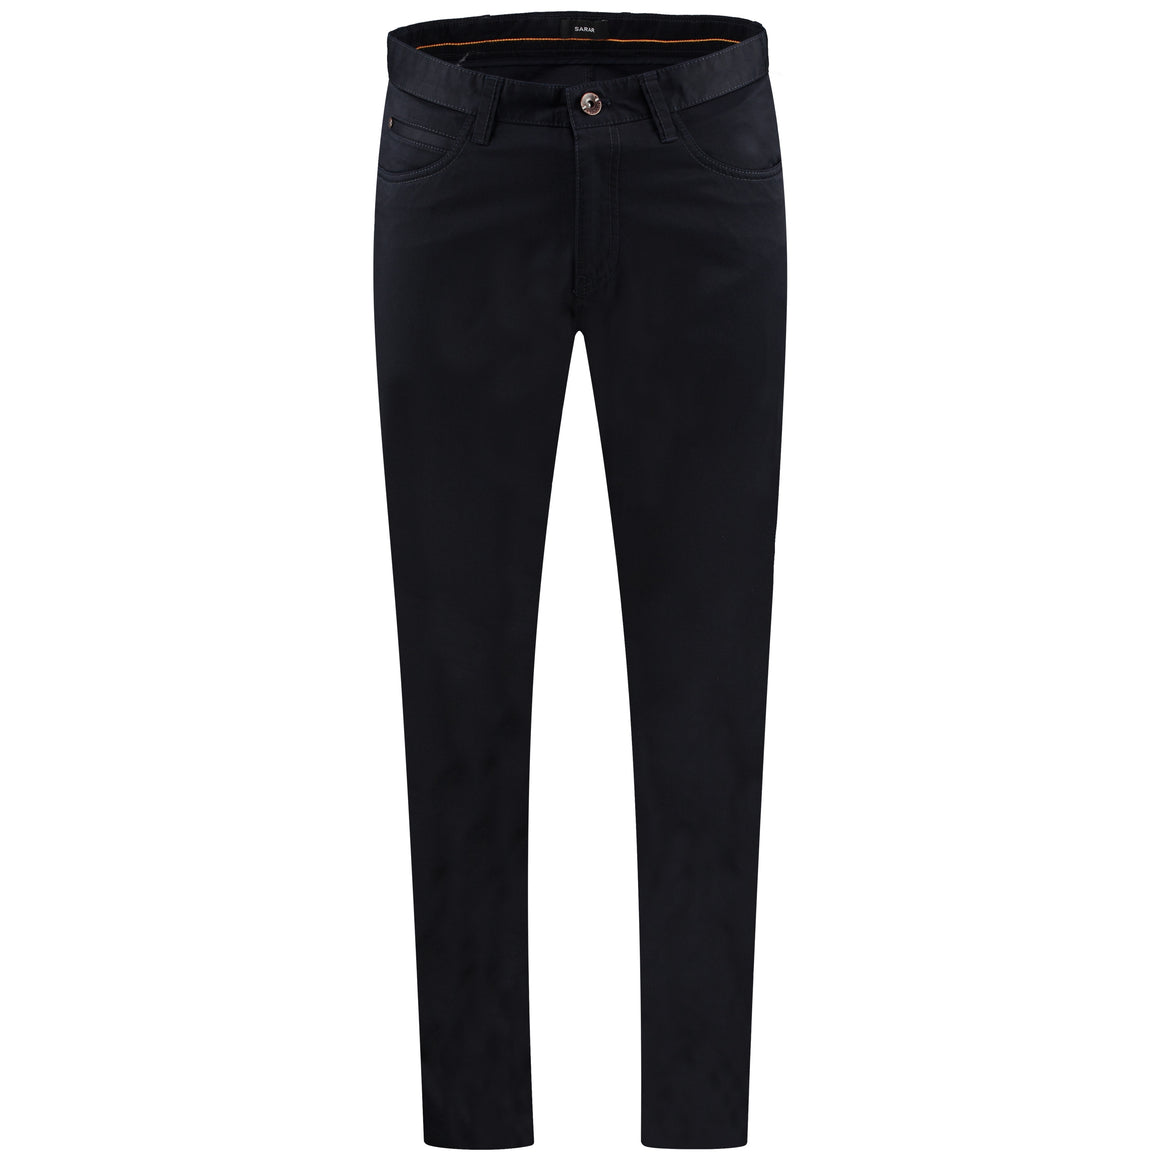 Front perspective of Carmelo flat black pants for men